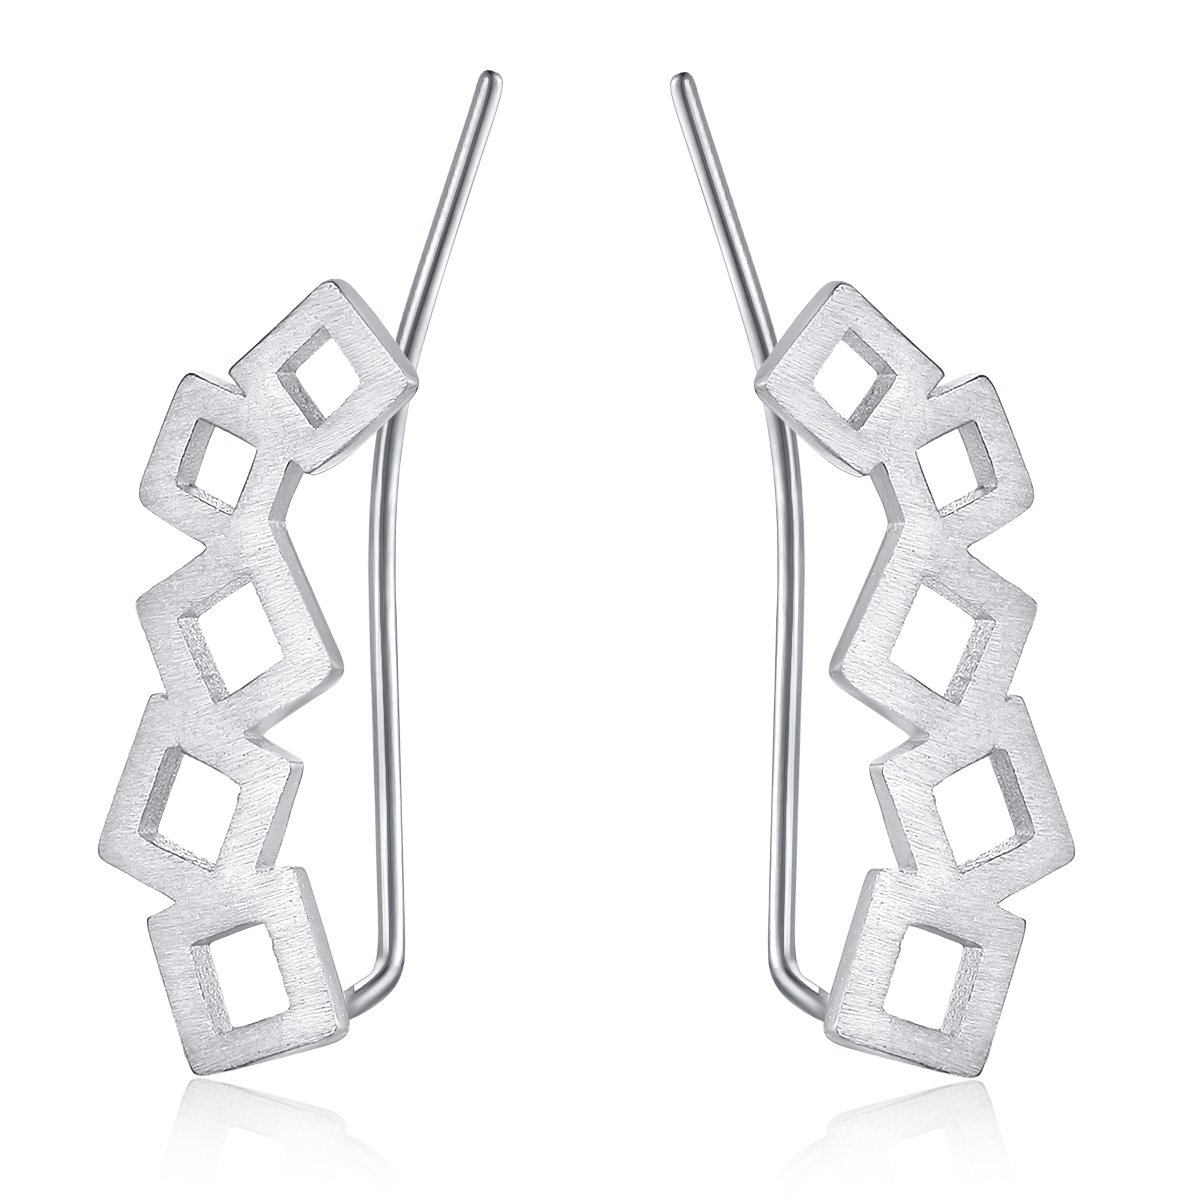 Solid Sterling Silver Ear Crawler Cuff Earrings Minimal Delicate chic simple Geometric Squares Ear Climber Earrings